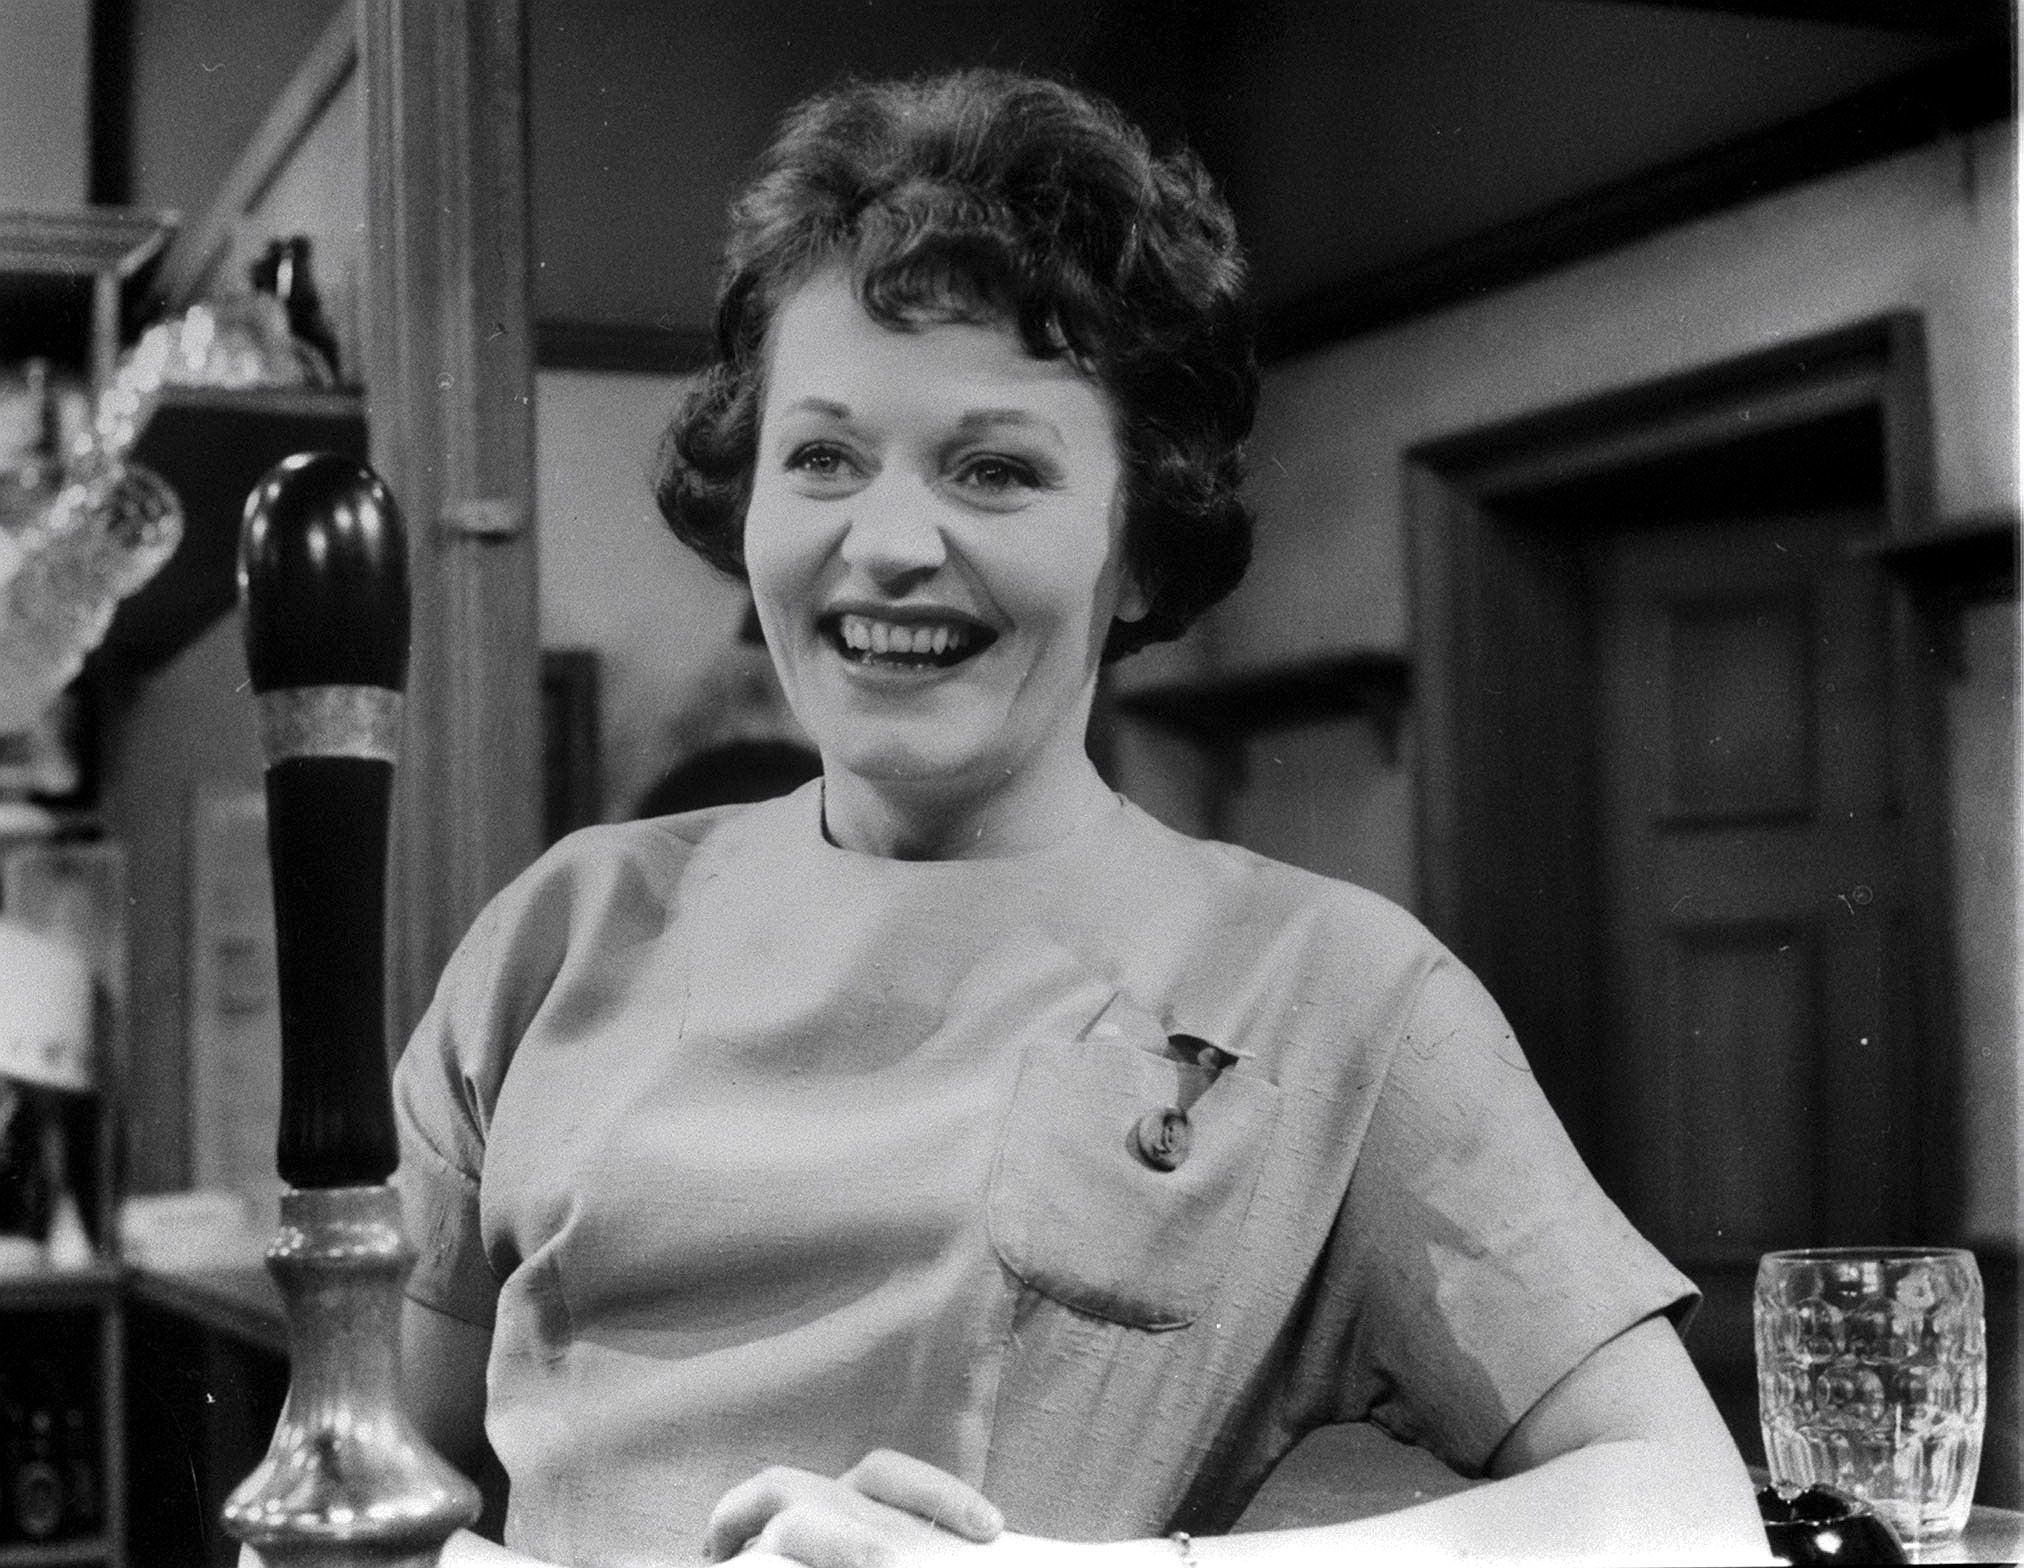 Doreen Keogh was the first barmaid to drag pints in the Rovers Return.